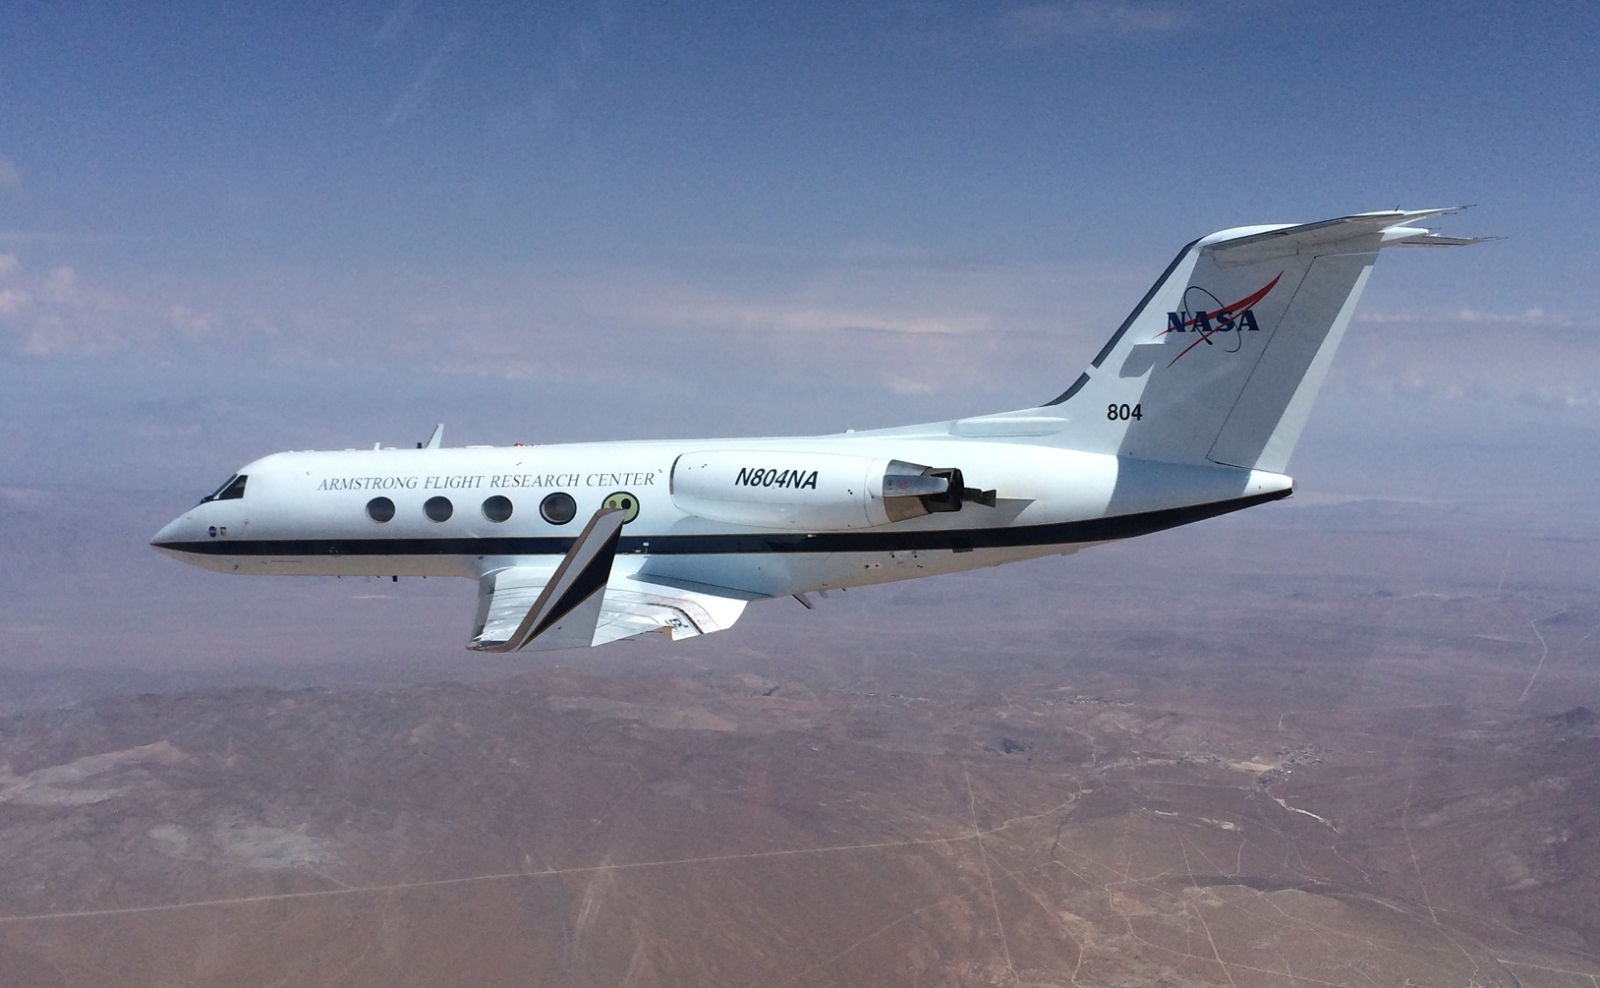 NASA shape changing wings ACTE